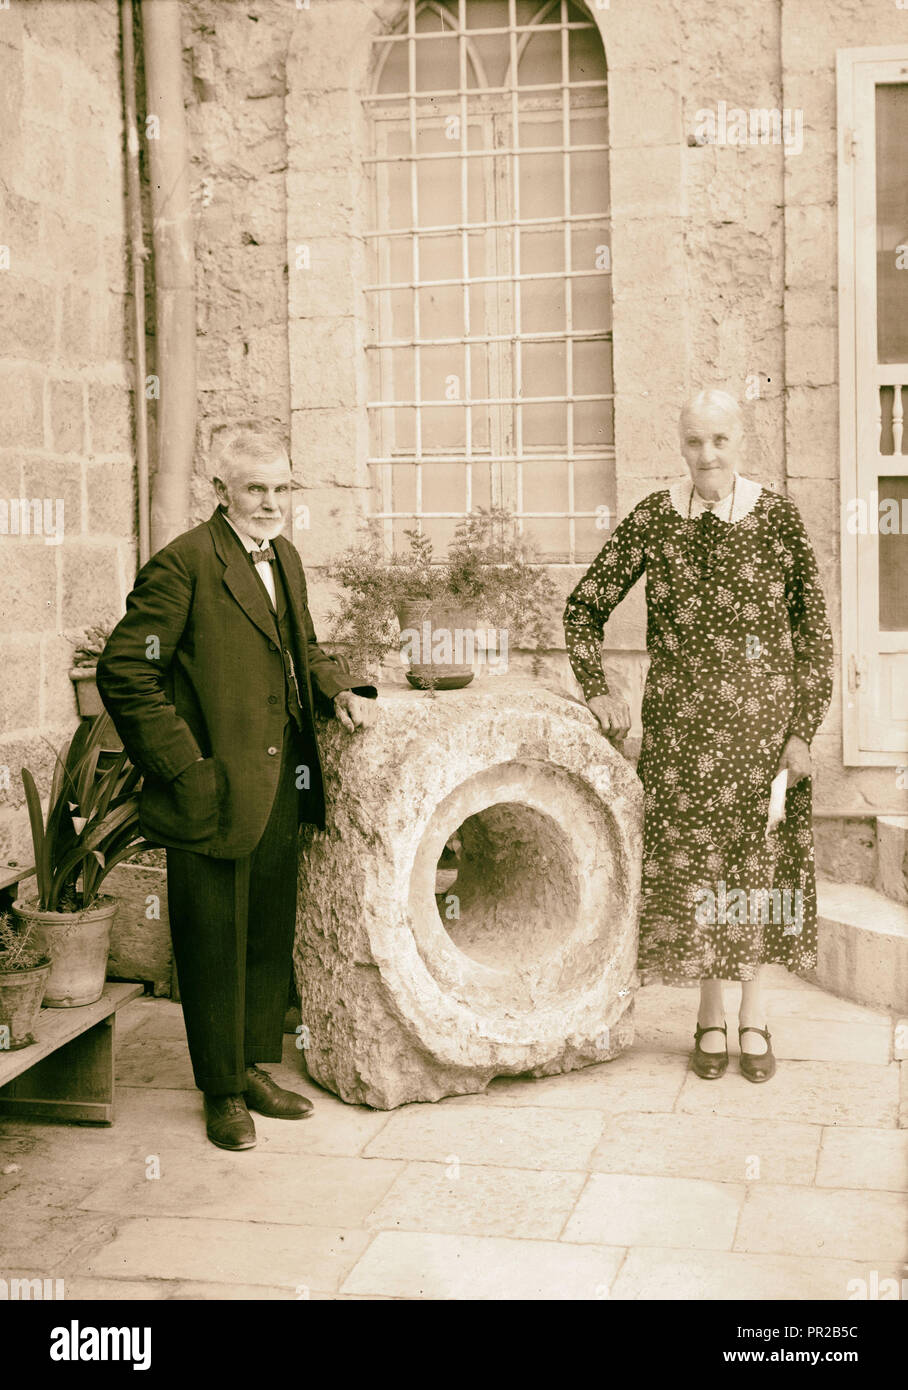 Mr. & Mrs. Joseph Larson of the American Colony photographed by section of the Roman acqueduct from Solomon's Pools - Stock Image